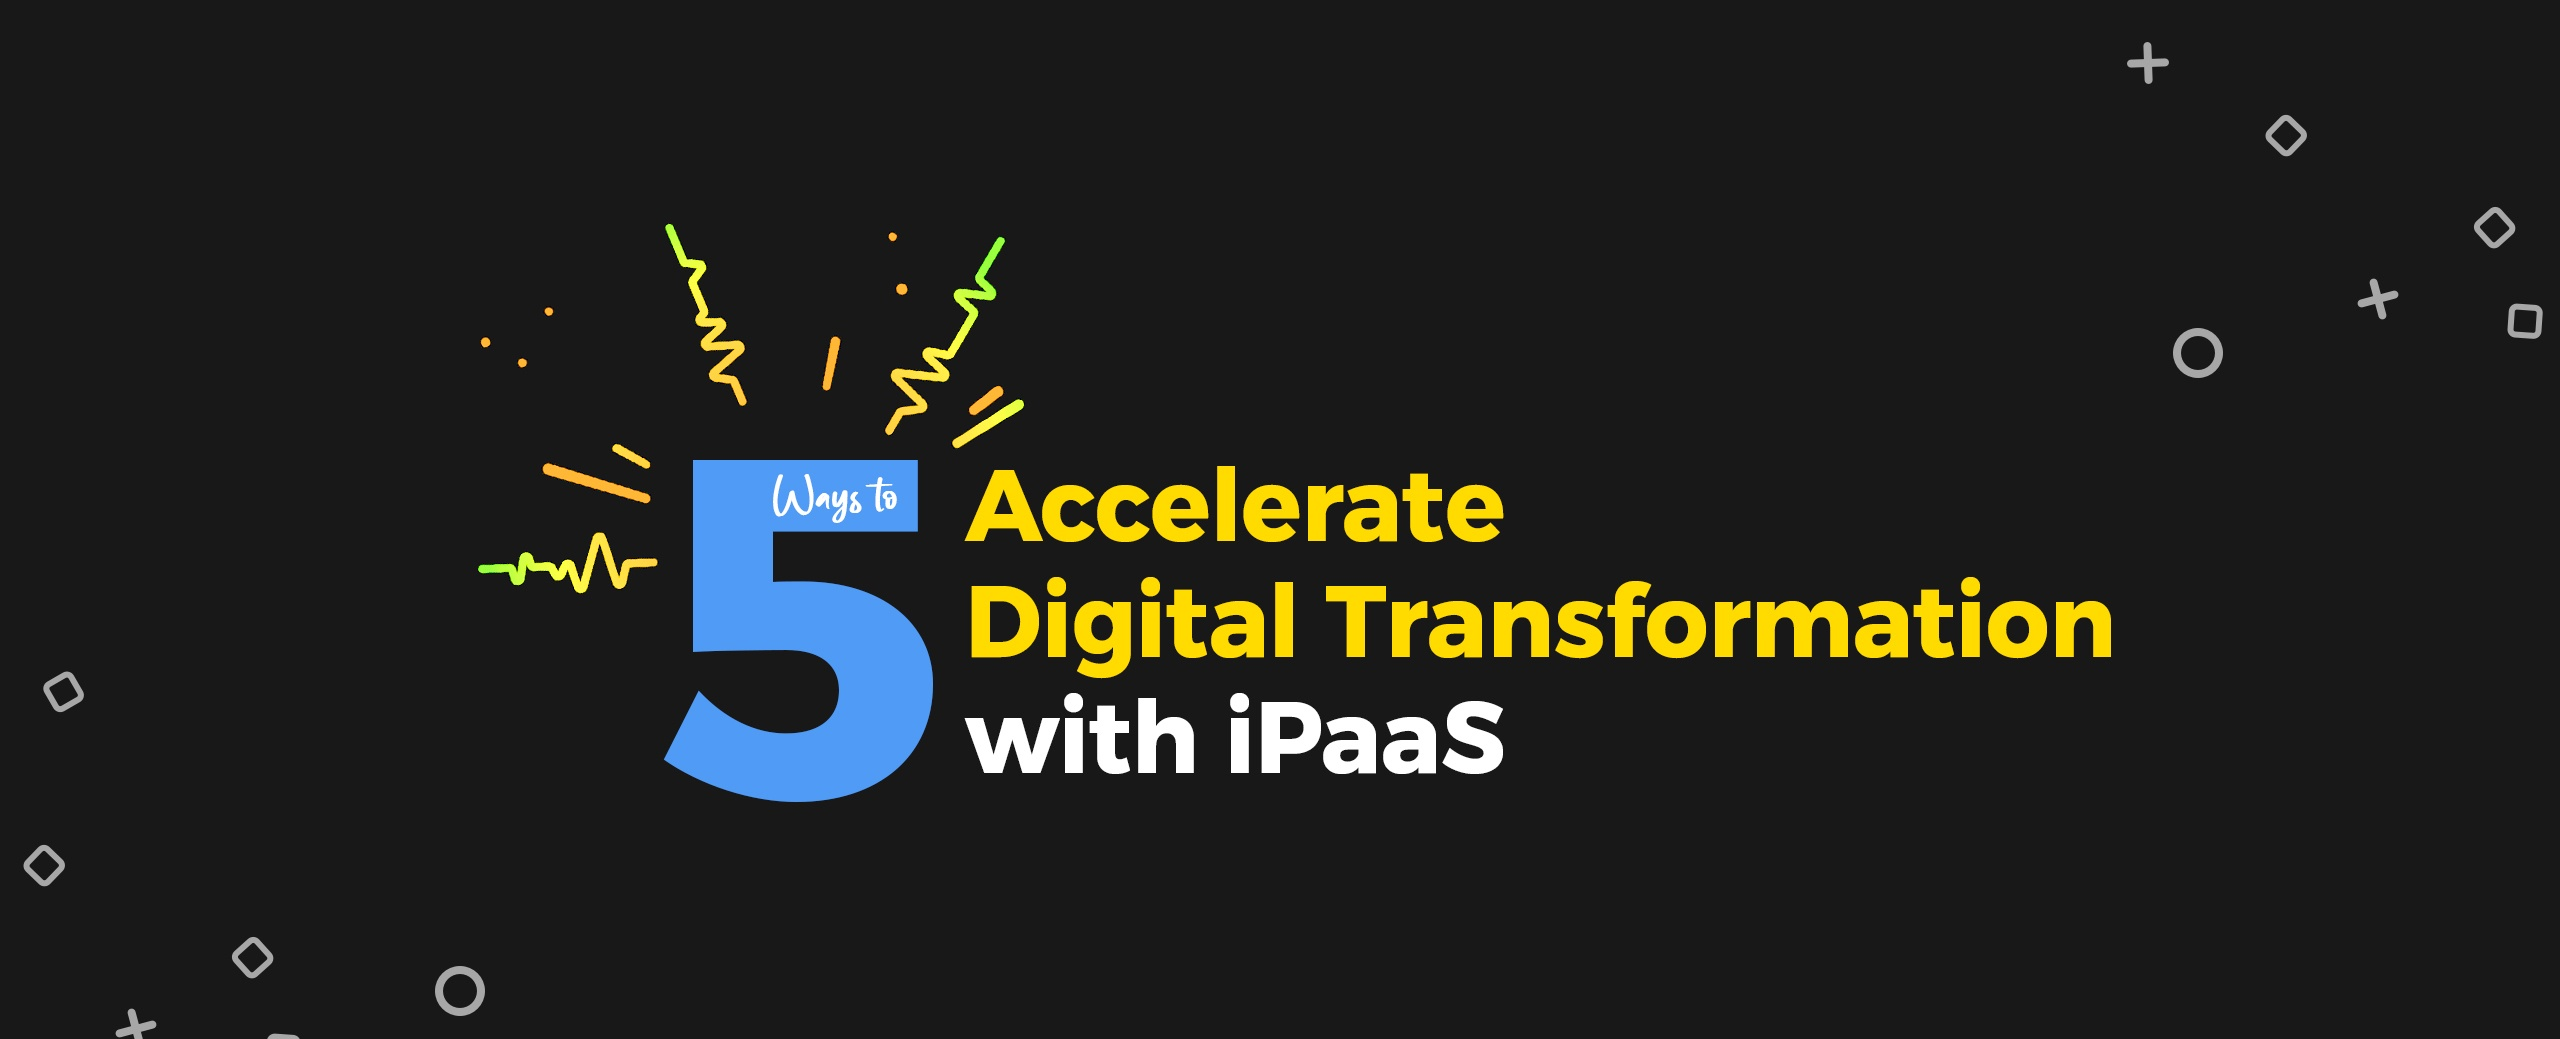 5-Ways-to-Accelerate-Digital-Transformation-with-iPaaS